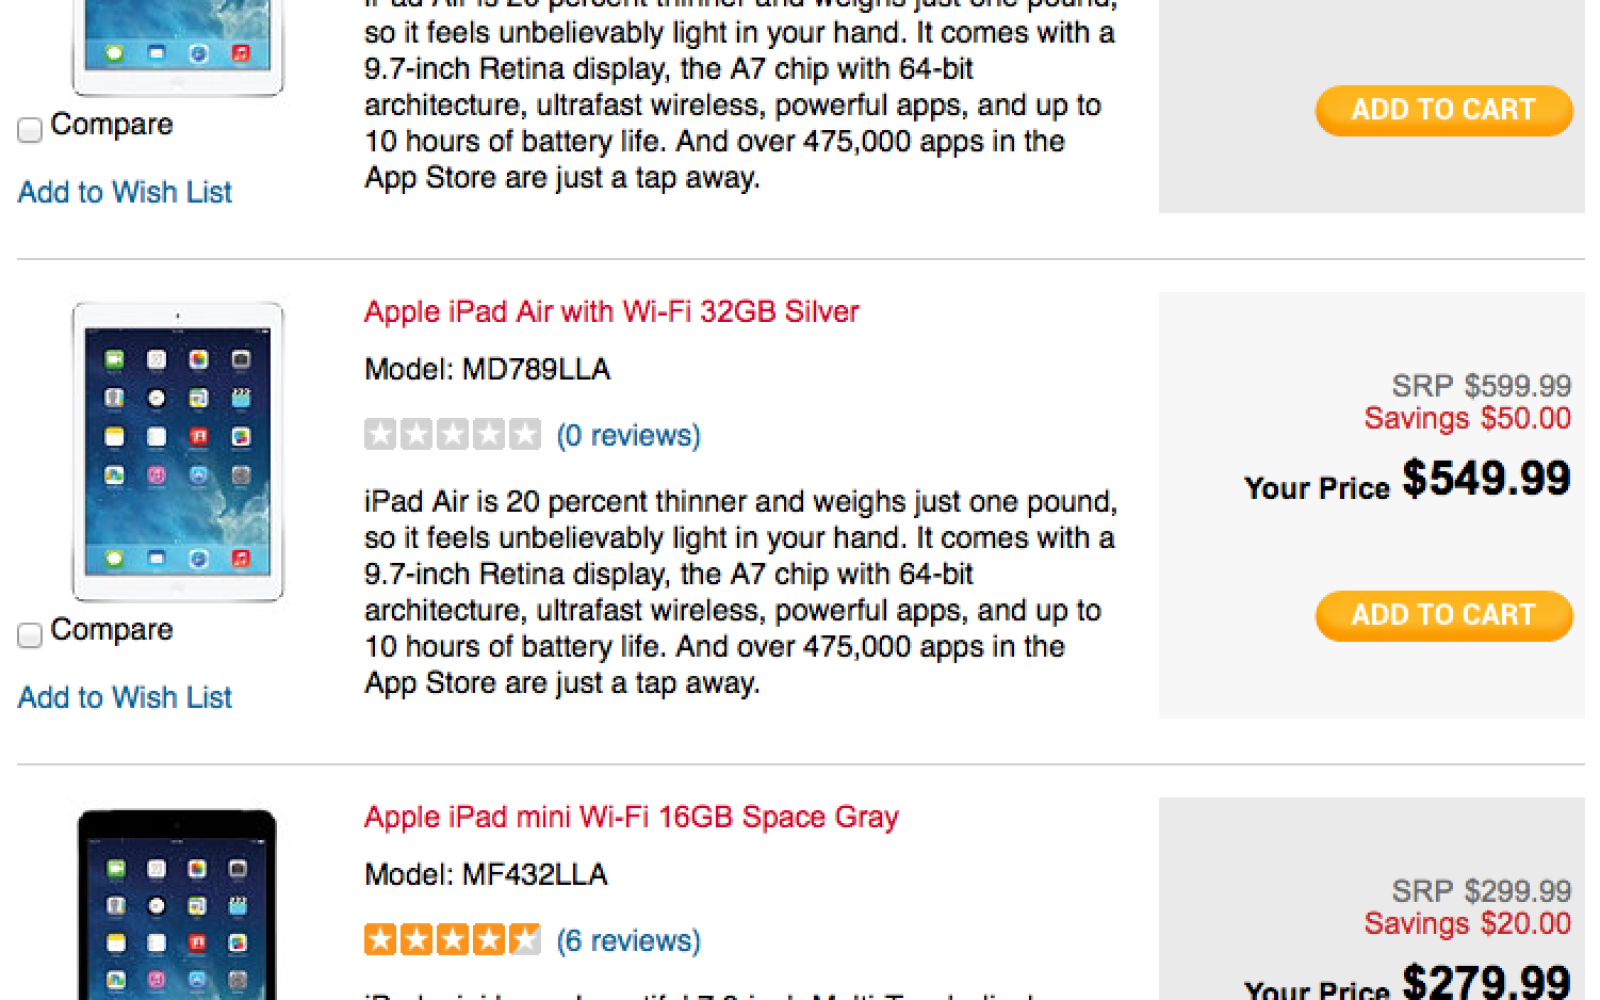 H.H. Gregg begins offering in-store pickup for Apple devices, celebrates by discounting iPad Air up to $60